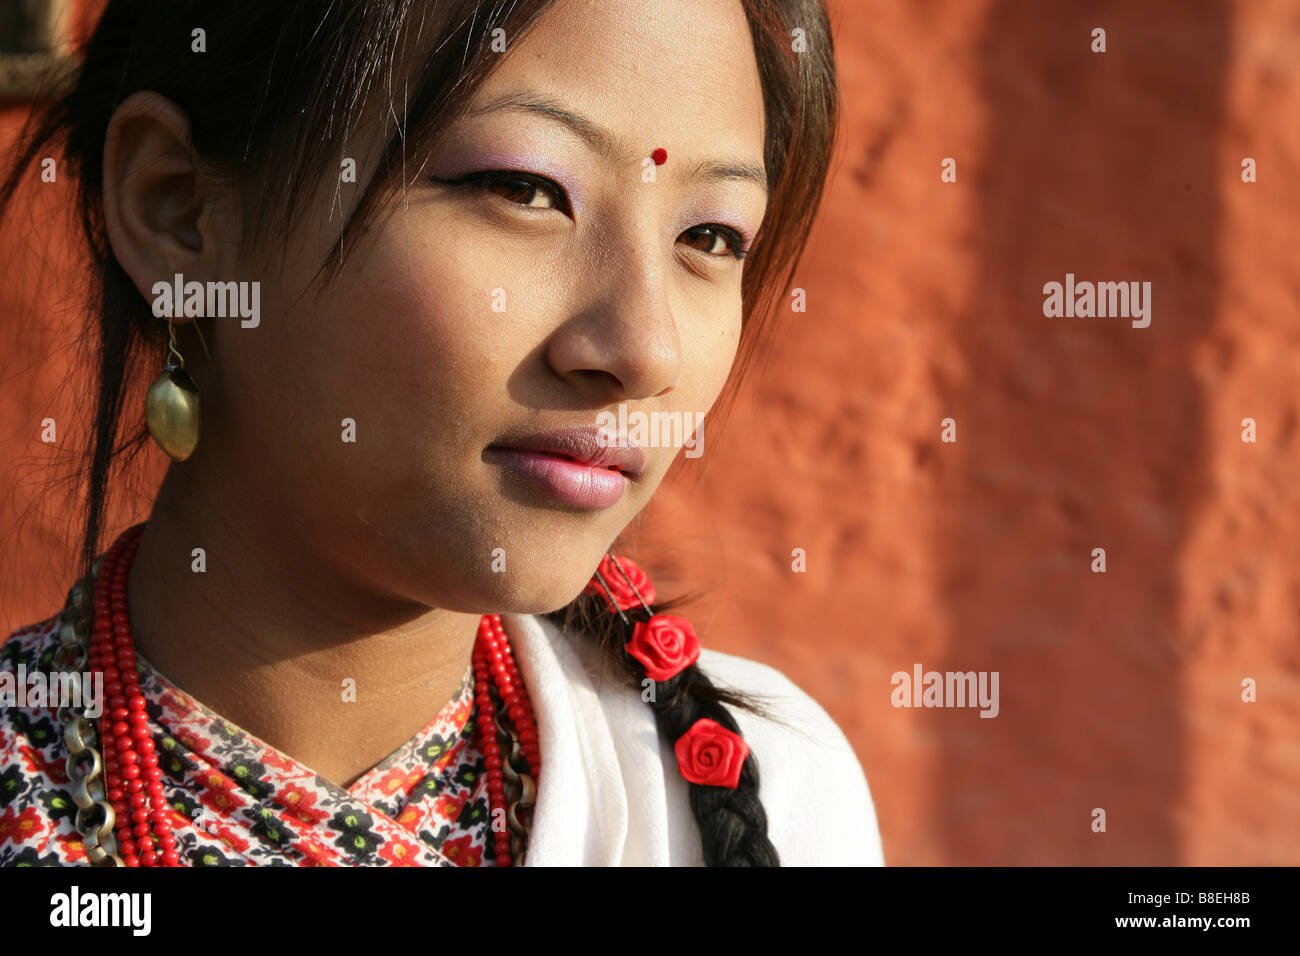 newari model - Stock Image